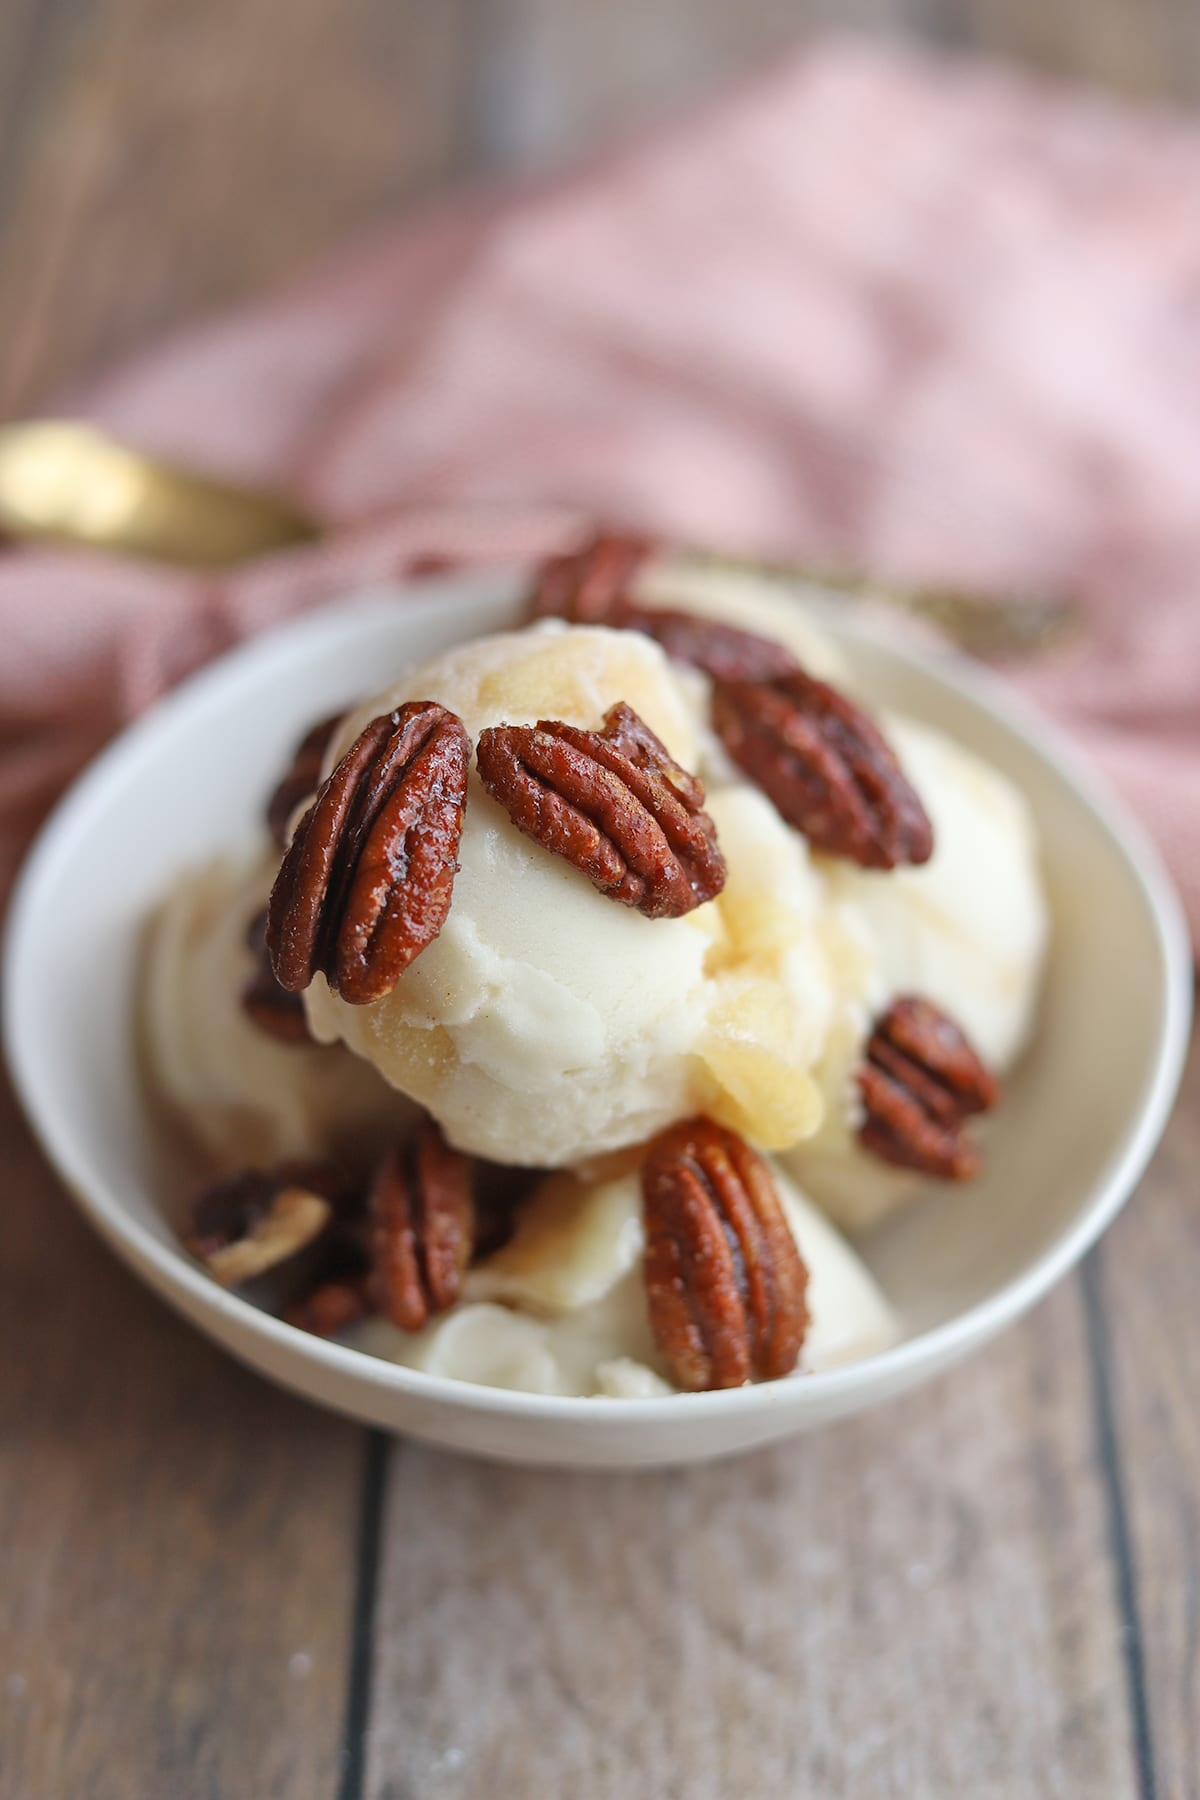 Candied pecans on bowl of non-dairy ice cream.